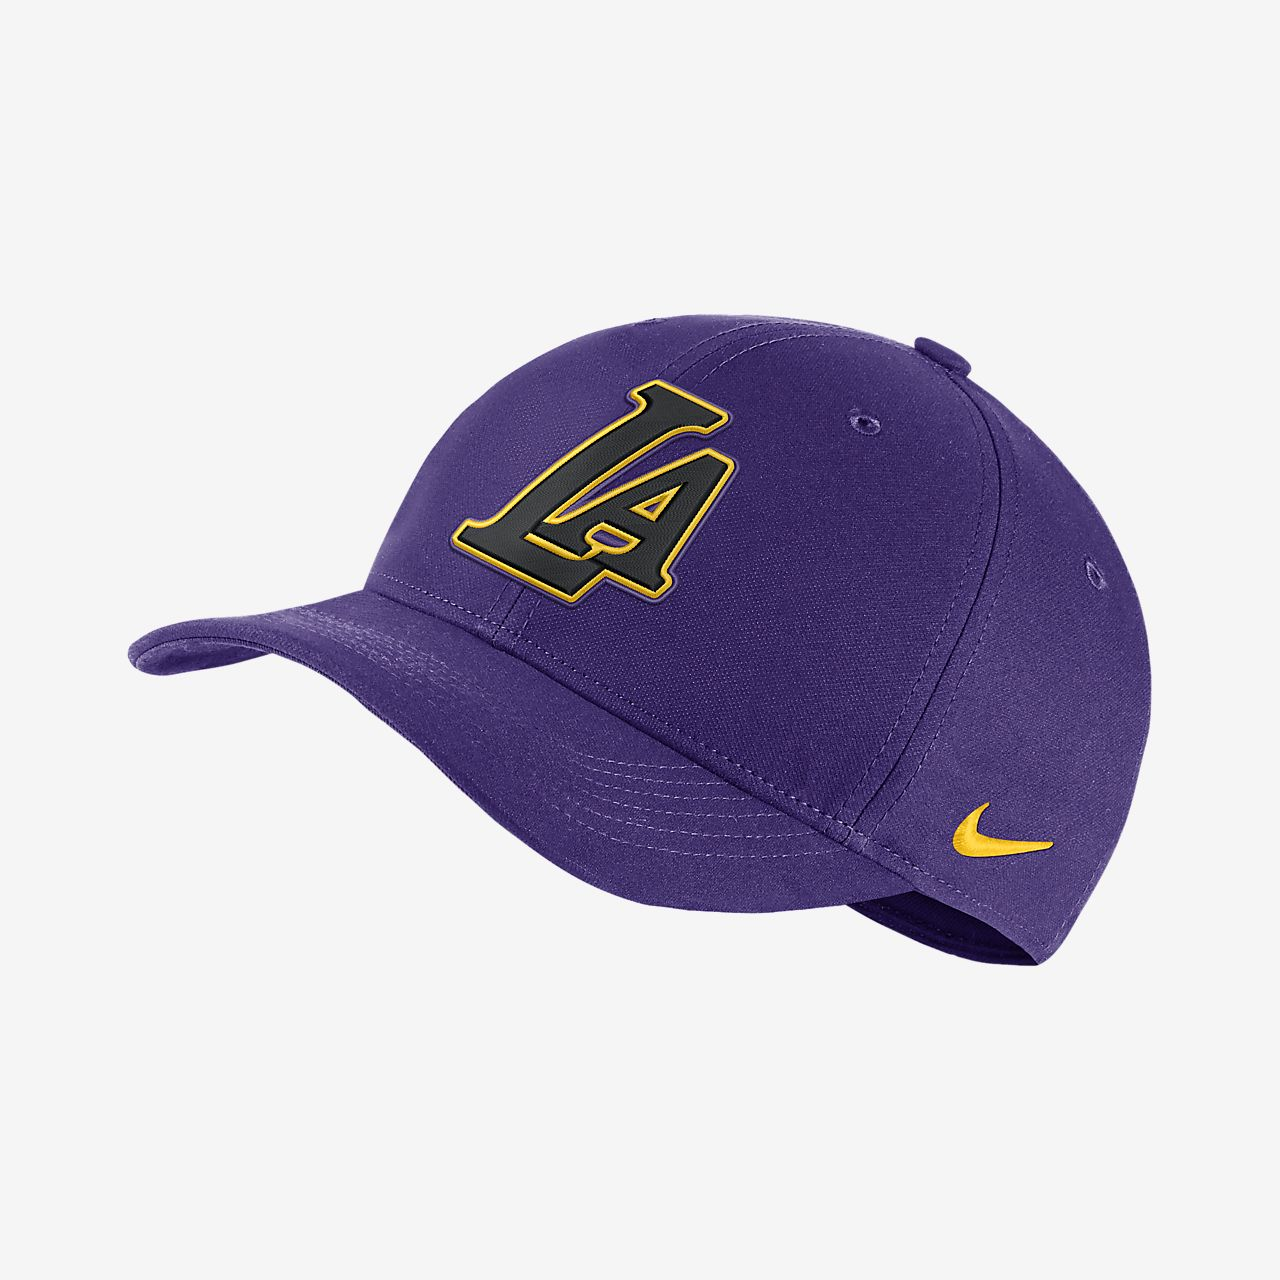 91ef5f4295d Los Angeles Lakers City Edition Nike AeroBill Classic99 NBA Hat ...